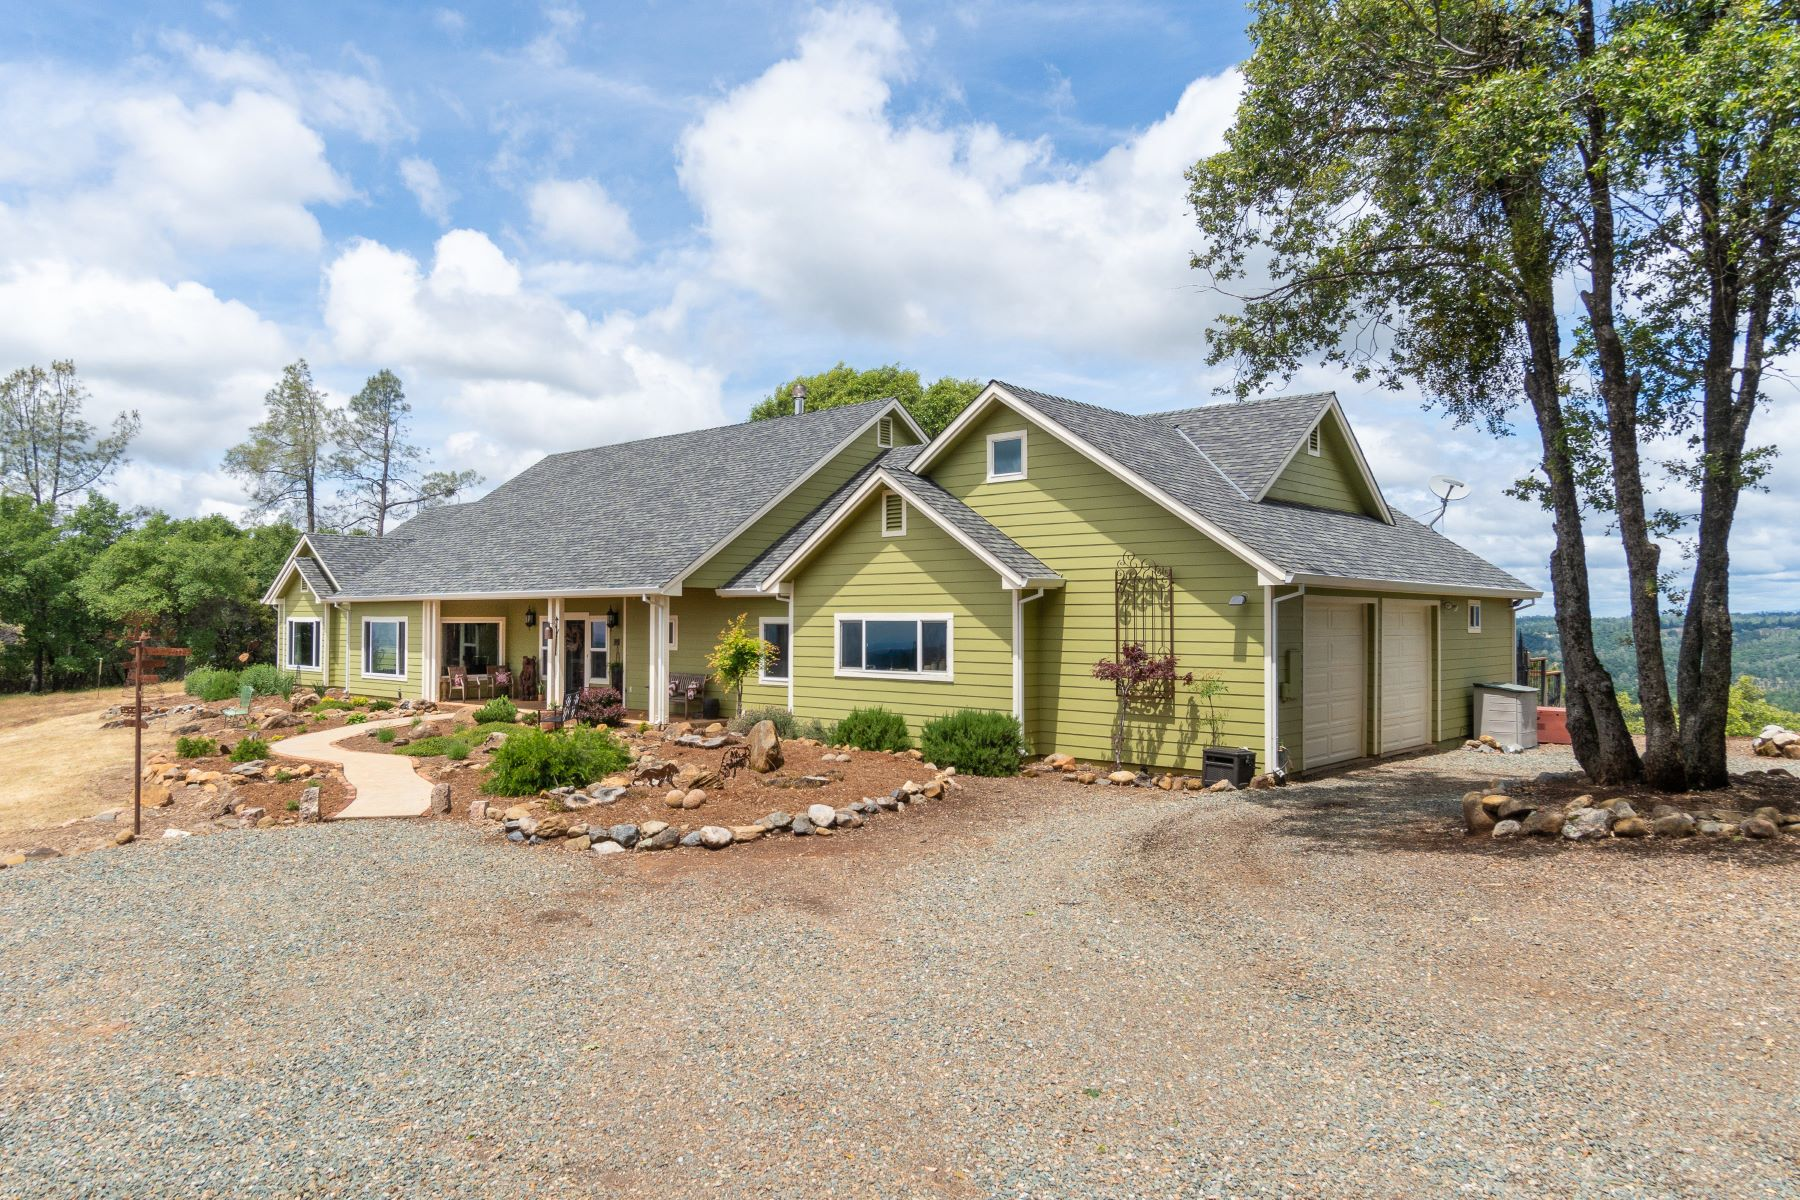 Single Family Homes for Sale at 16671 Stone Jug Road, Sutter Creek, CA 95685 16671 Stone Jug Road Sutter Creek, California 95685 United States